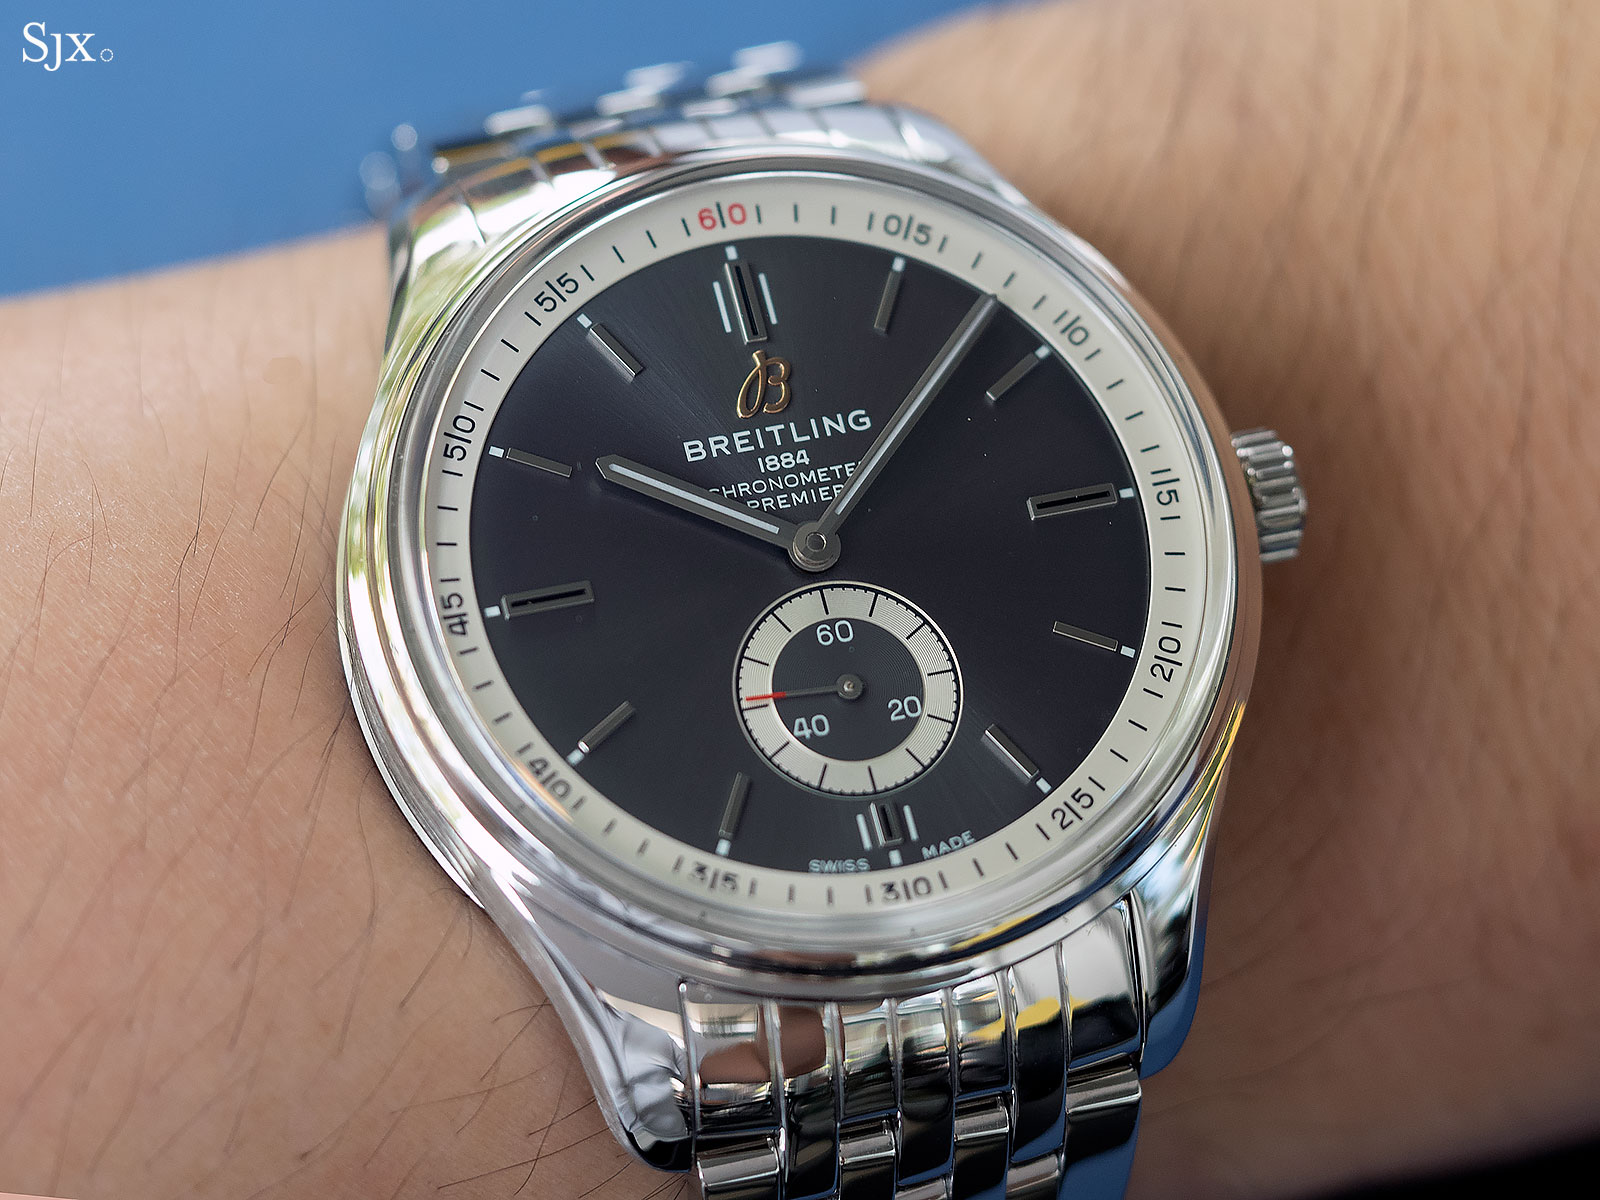 Hands On With The New Breitling Premier Sjx Watches